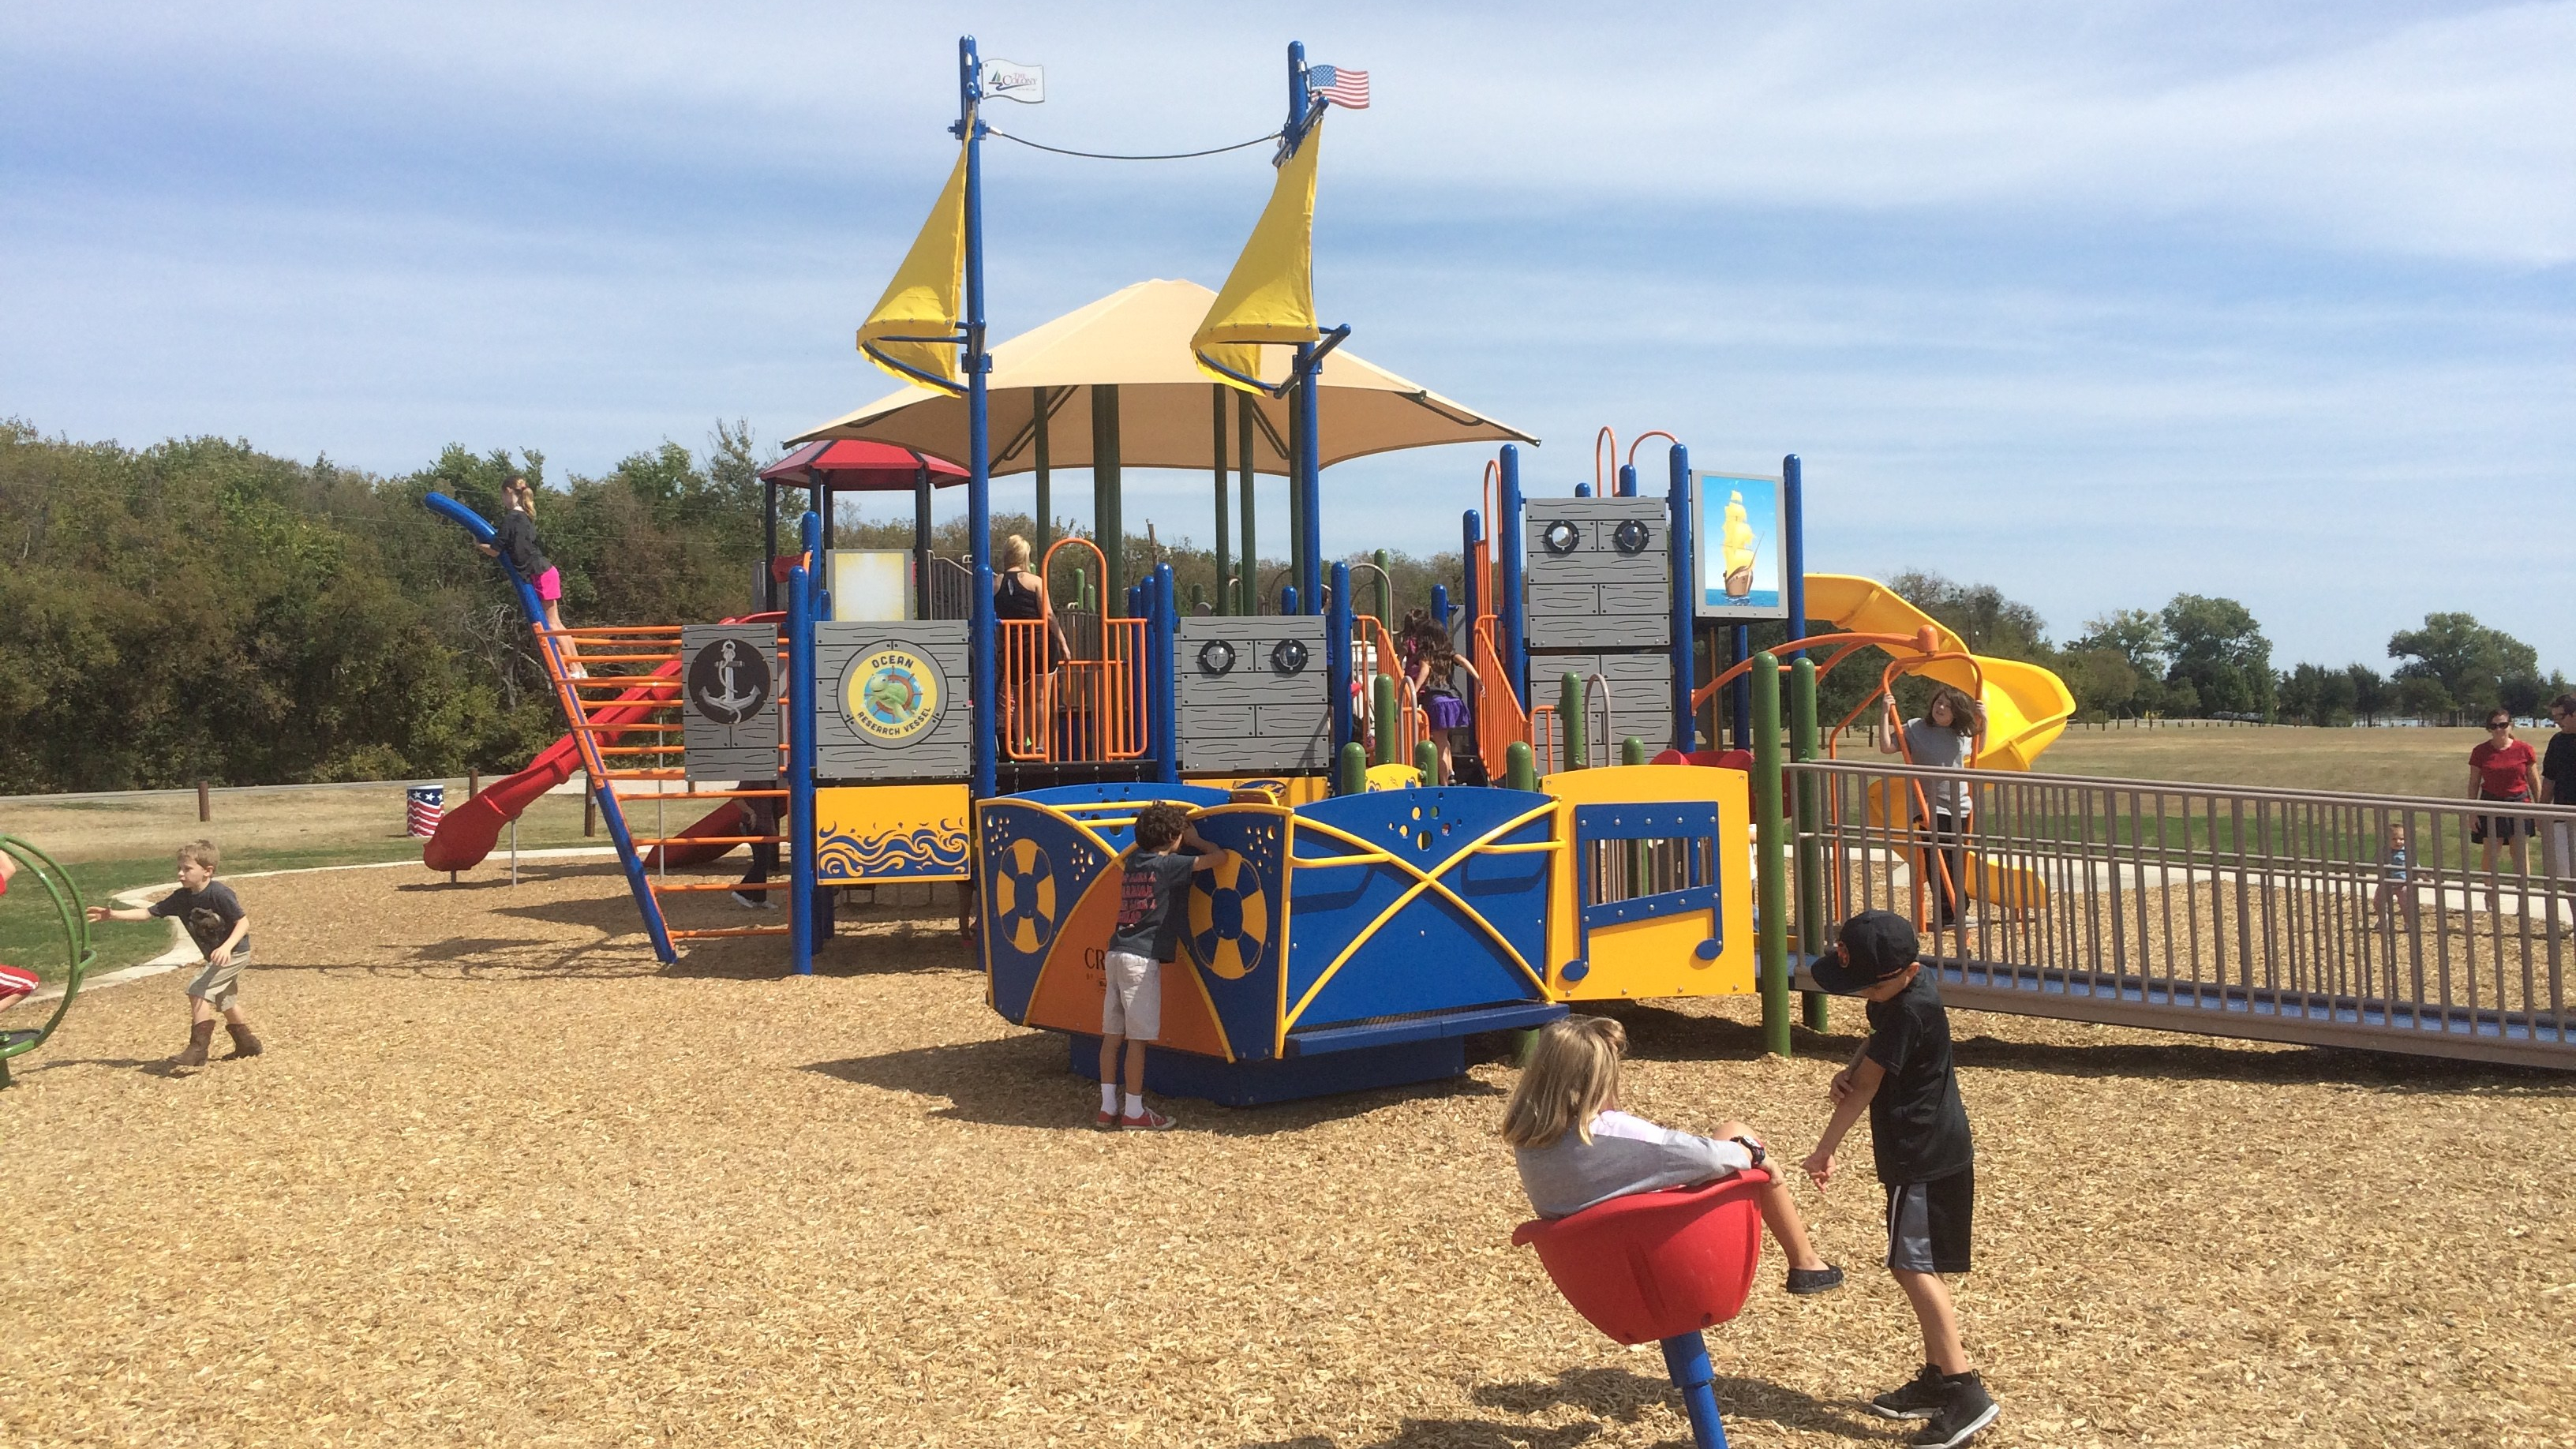 Stewart Creek Playground